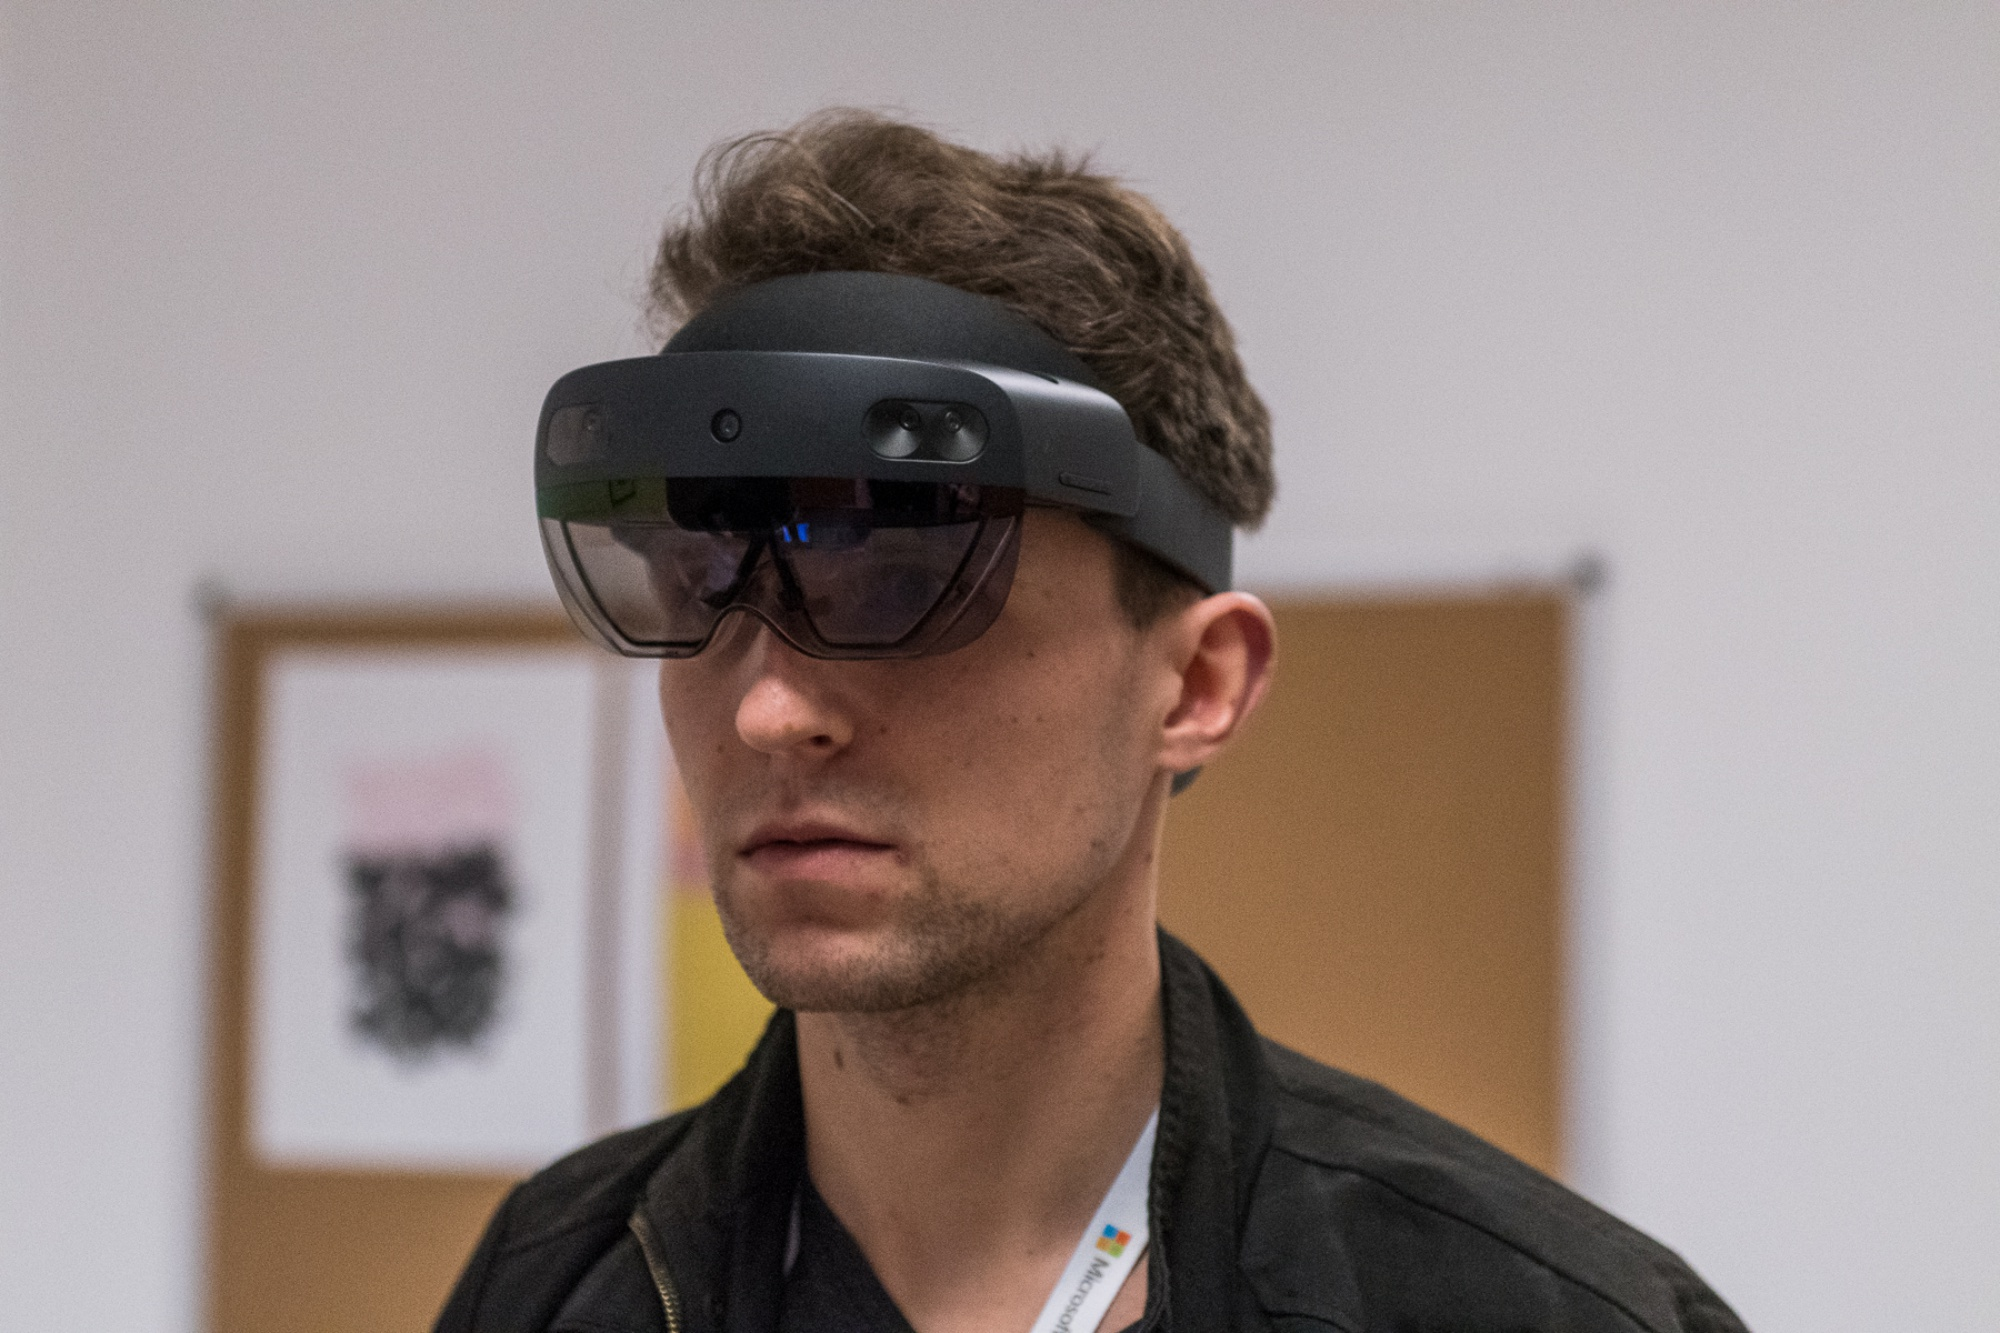 Only with us: I ve created Hololens 2 goggles  This gadget will really  change the world